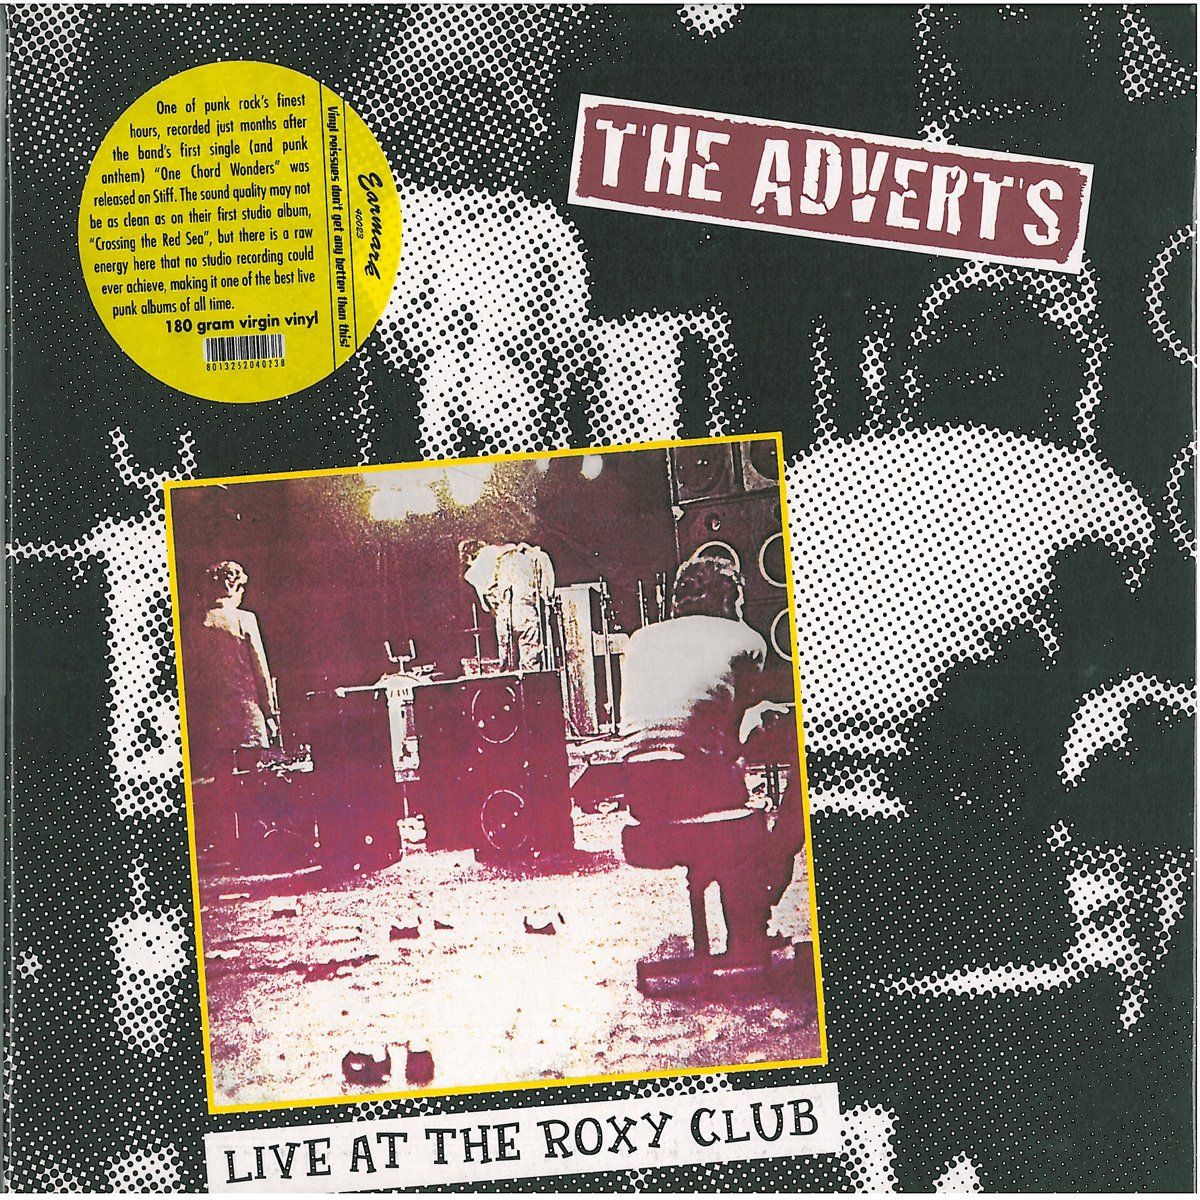 Live at the Roxy Club 1977 [Vinyl]